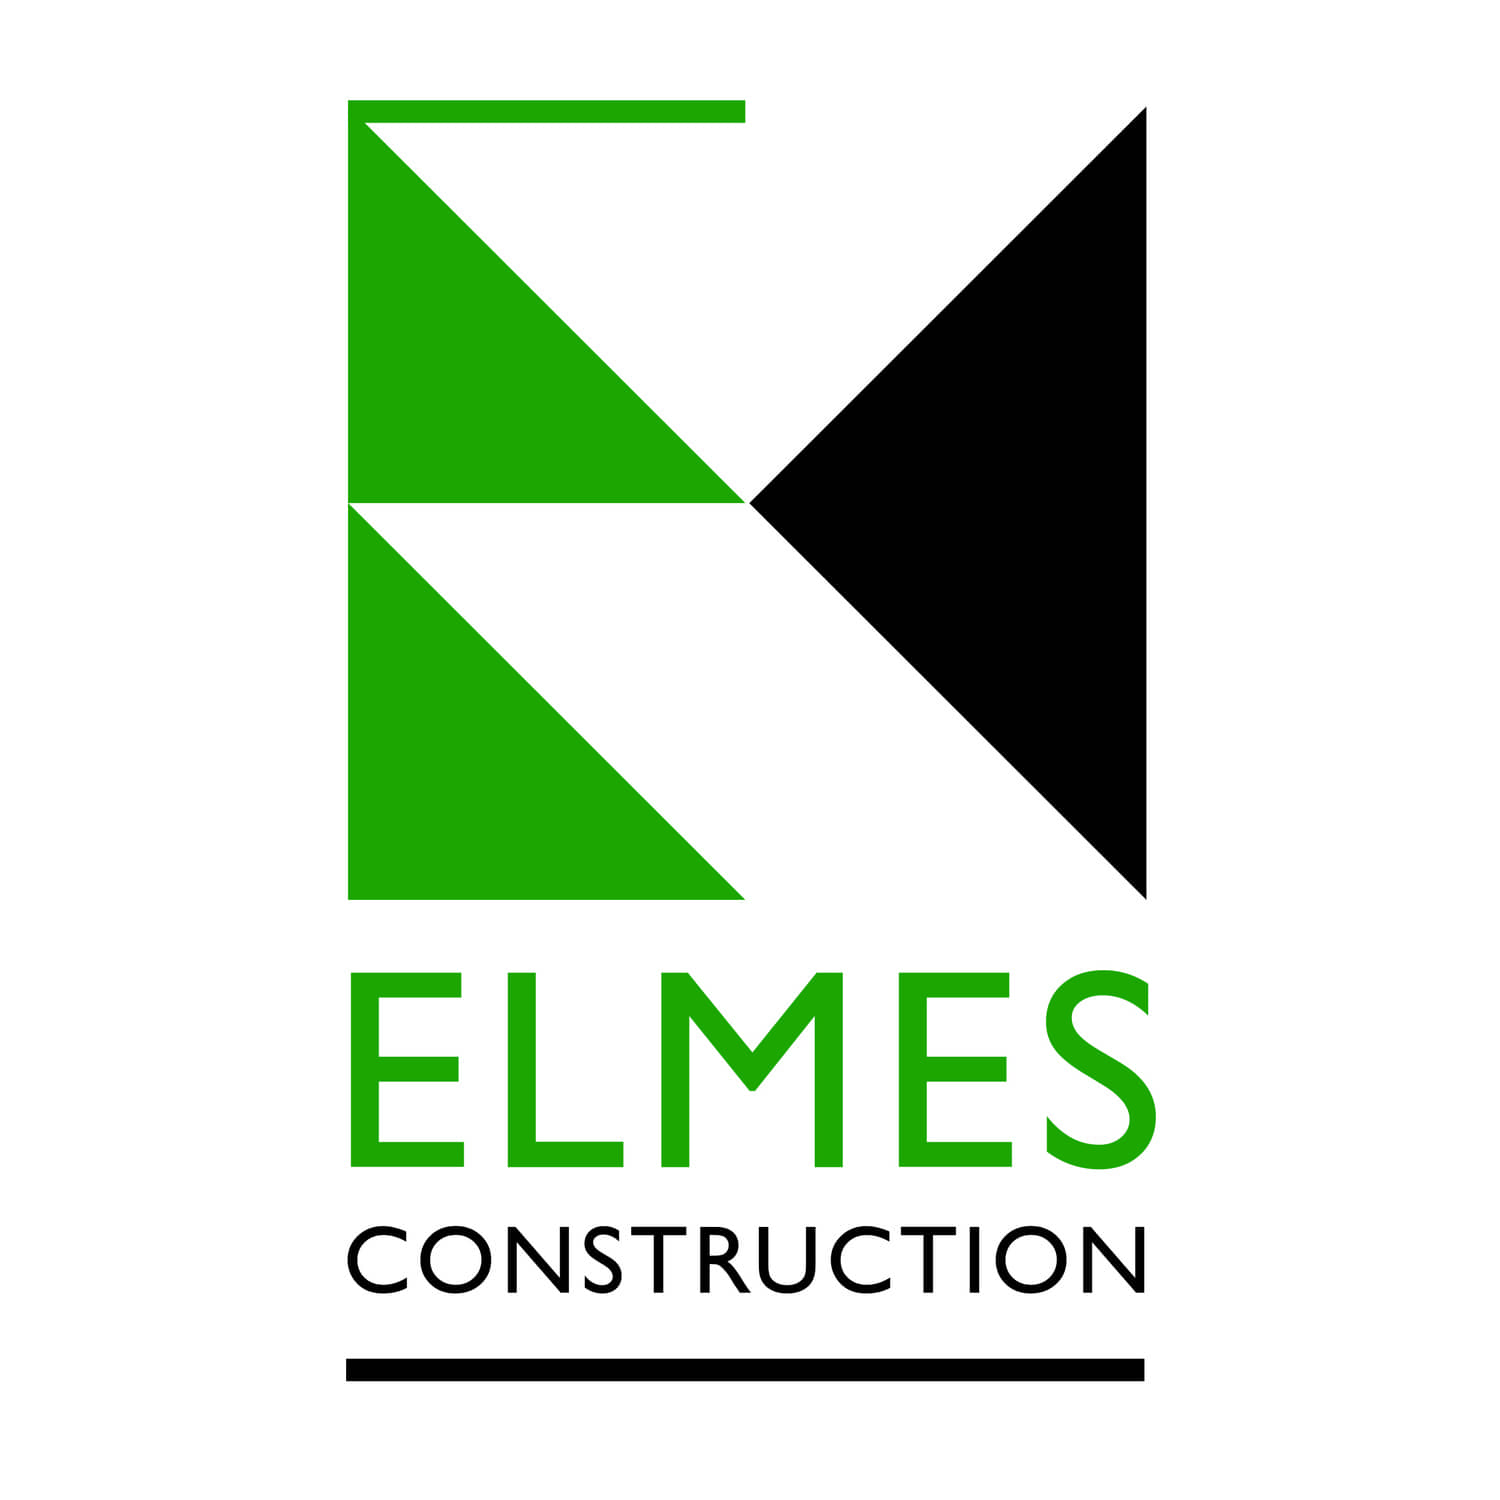 General Builders, Bricklaying & Building Contractor in Plymouth